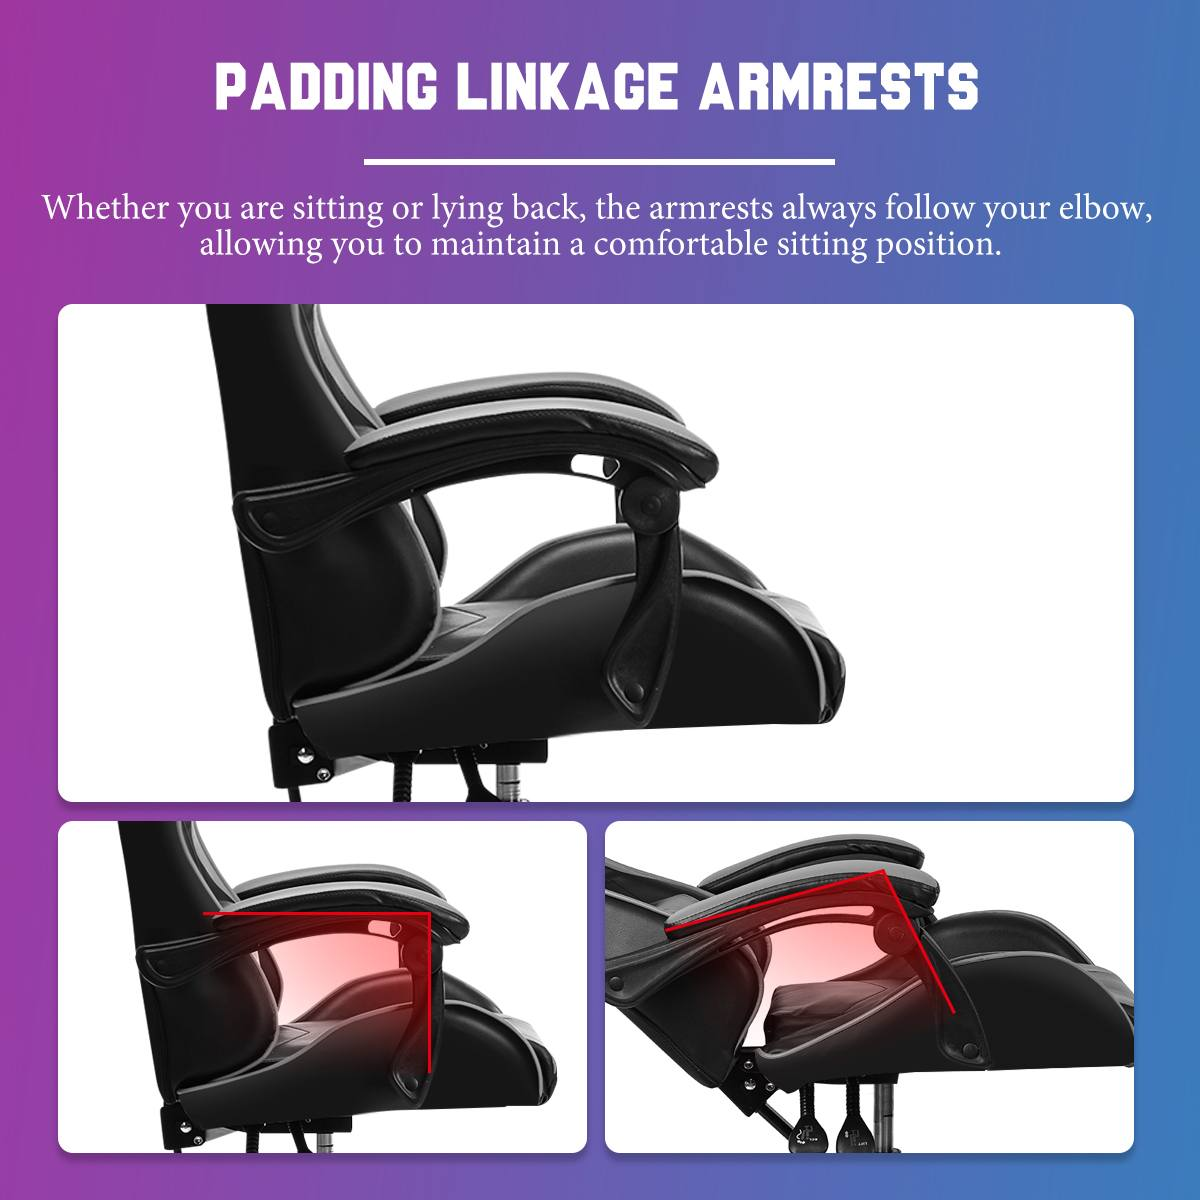 Hdb4f3793fb5f49eeb371b011eac1cc0eE - Adjustable Office Chair Gaming Ergonomic Leather Racing Desk Chairs Gaming Computer Chaise Game Chairs Reclining Seating